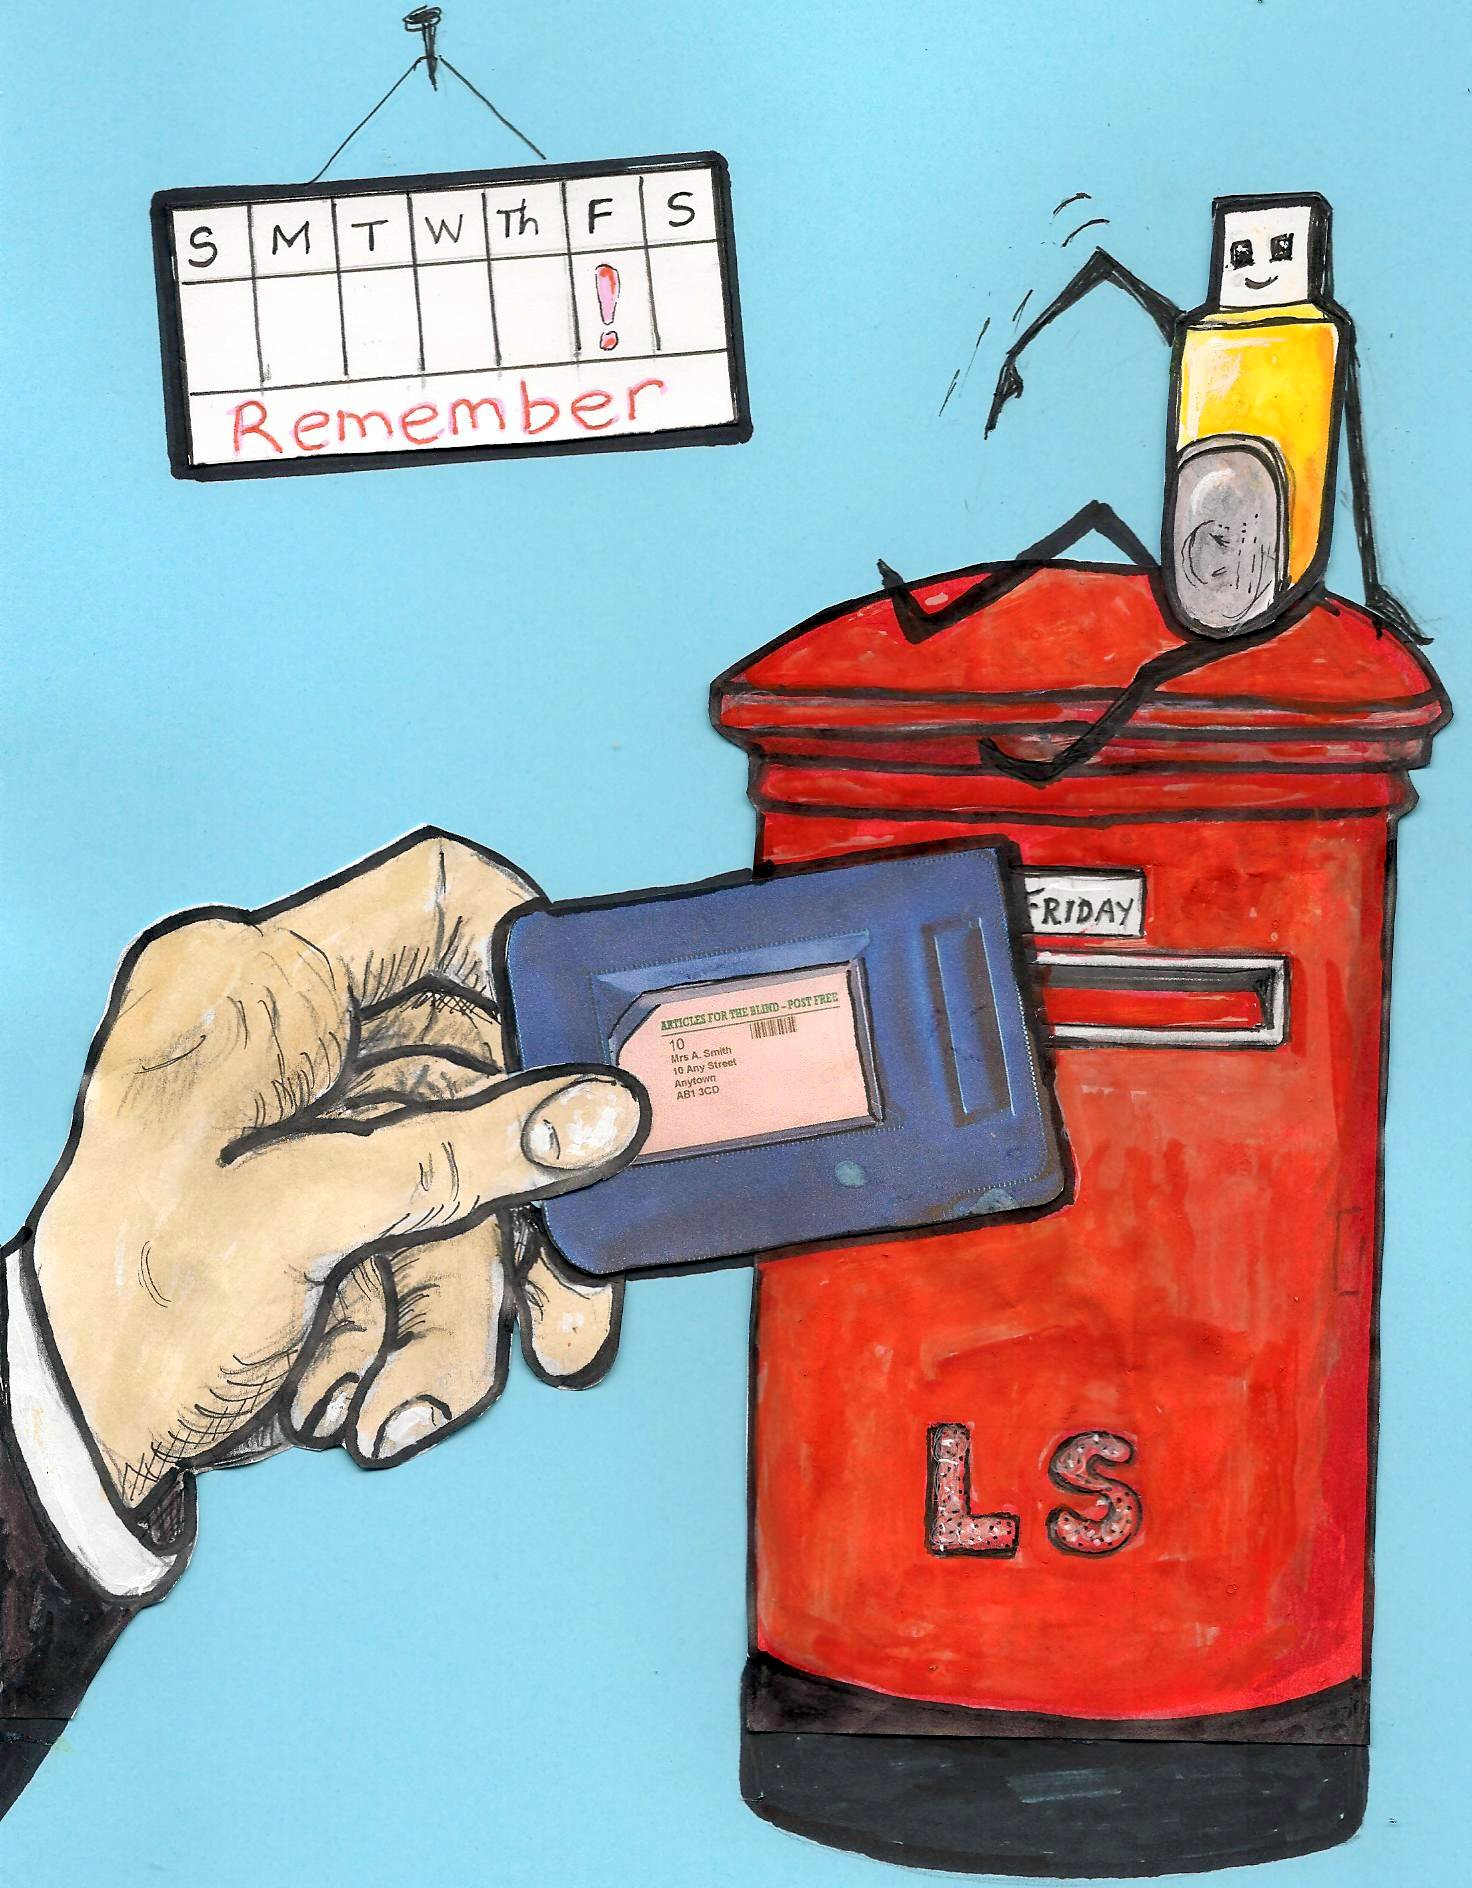 A cartoon memory stick sits jauntily atop a postbox, reminding us to return sticks in pouches on a Friday.